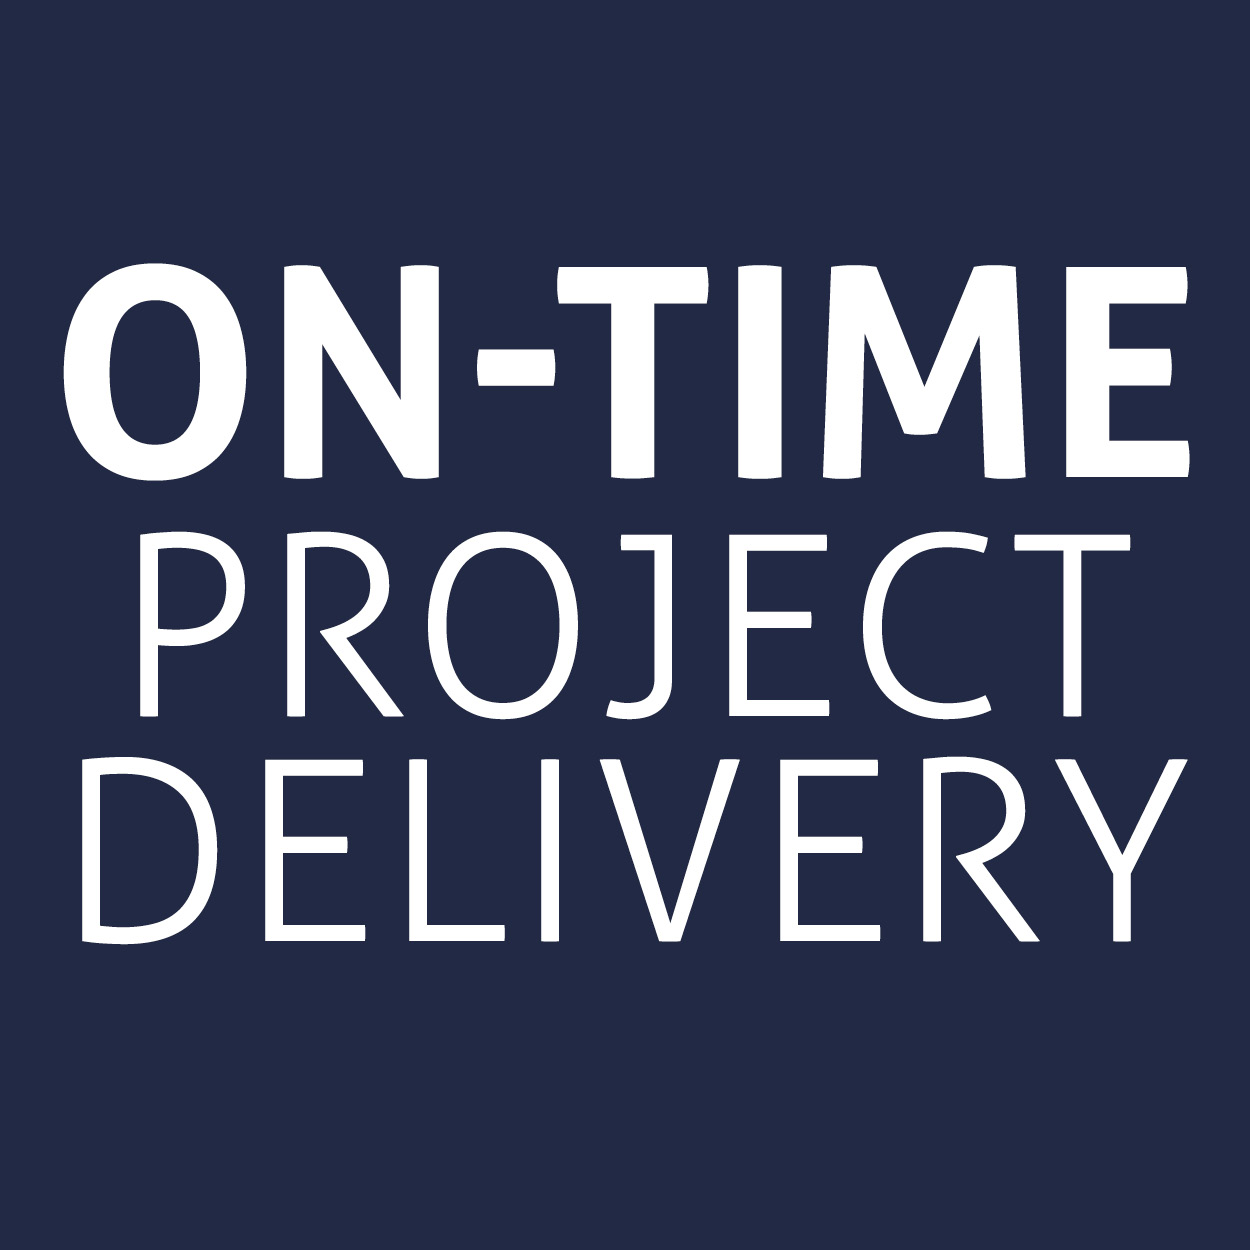 On time project delivery